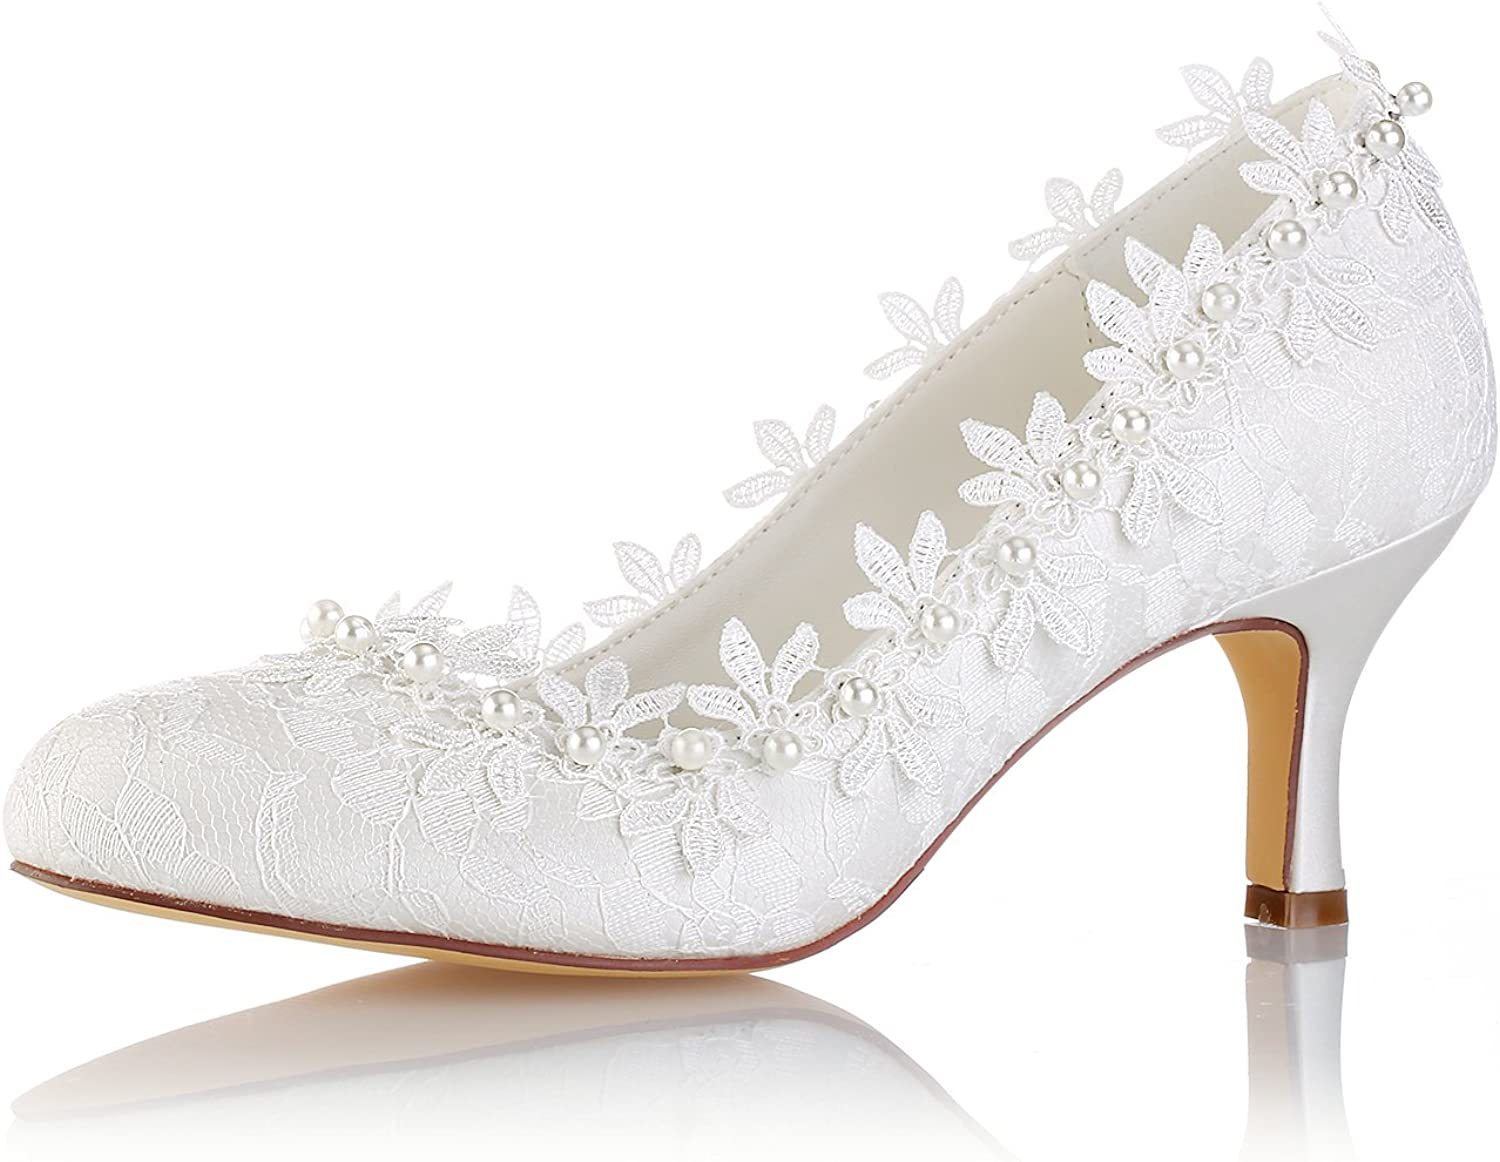 Round Toe Bridal Shoes Top Sellers, UP TO 18 OFF